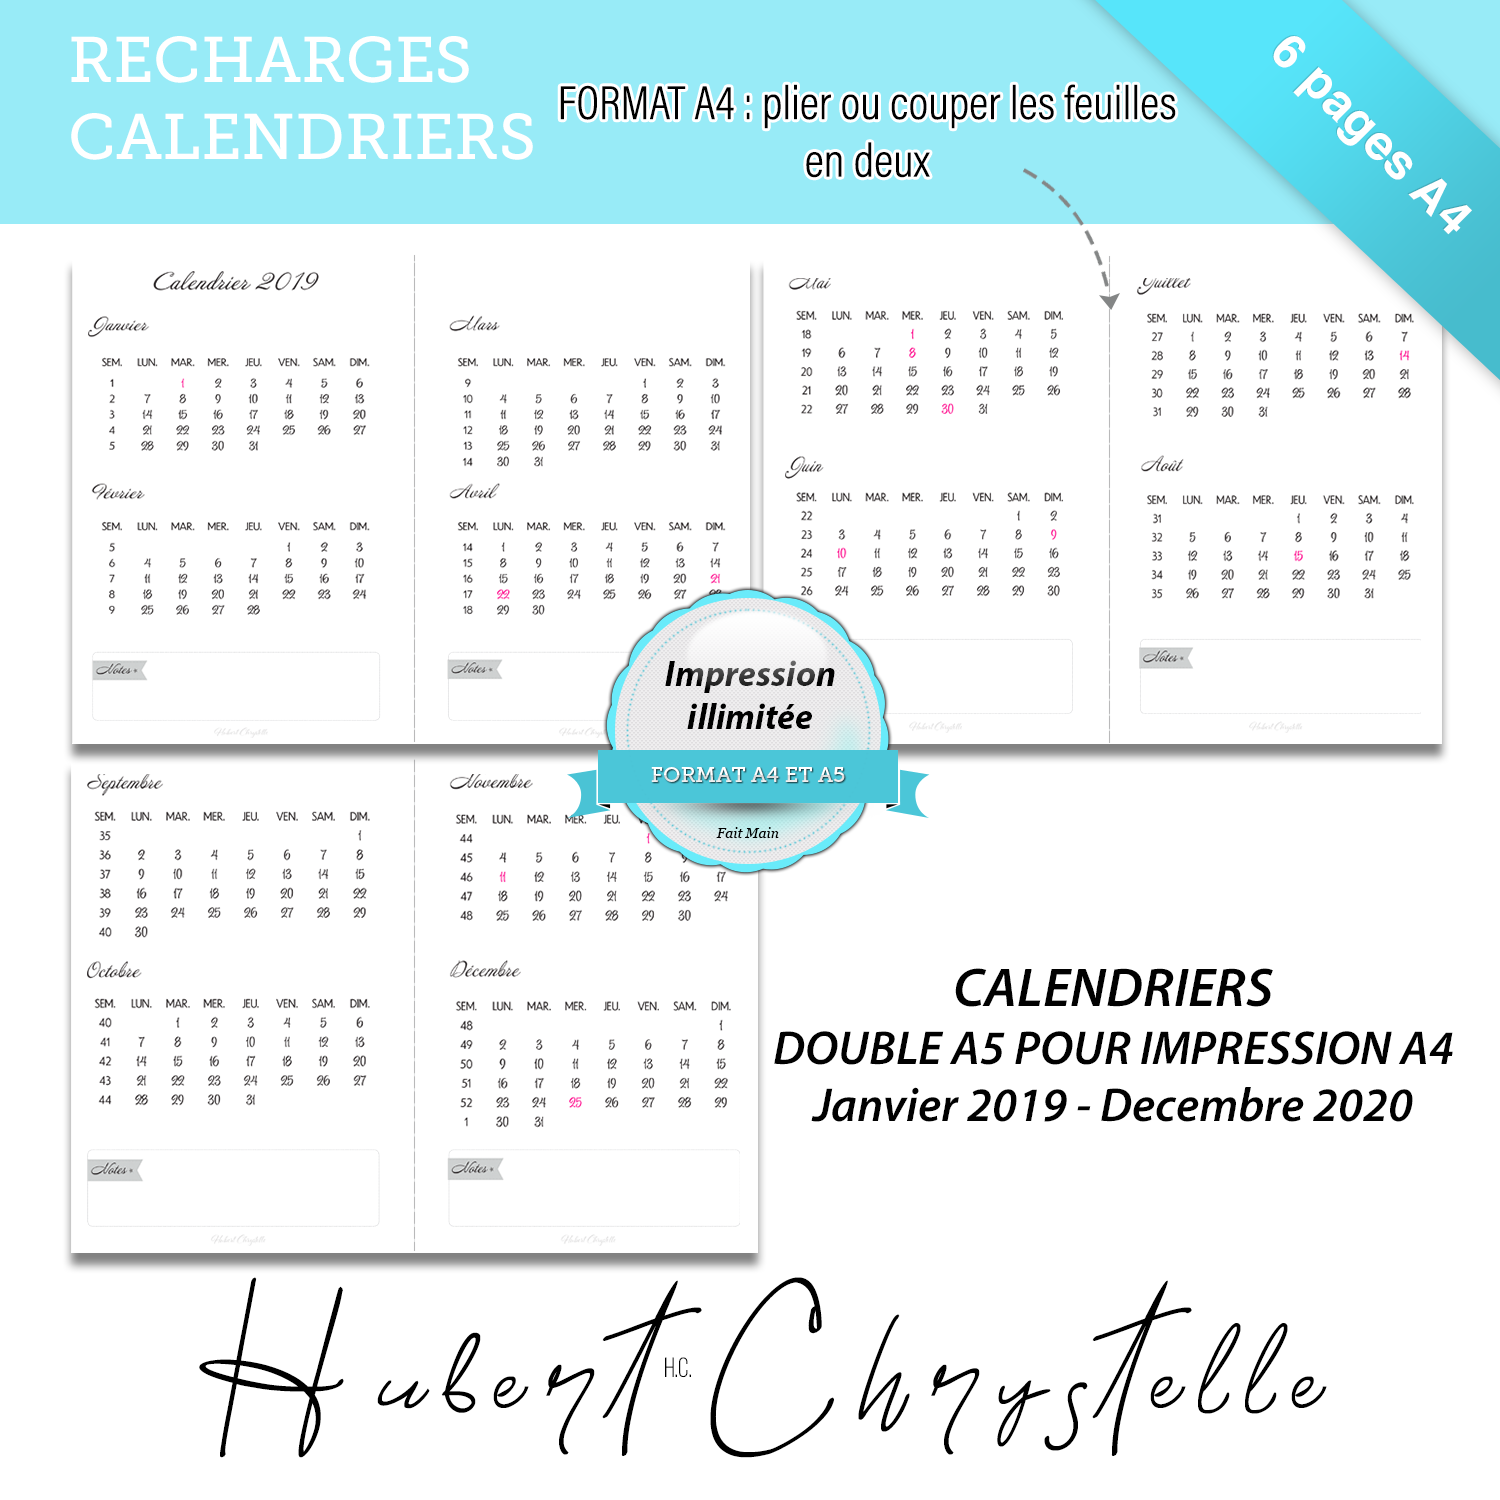 Calendrier 2019 2020 A Imprimer.Recharge Calendriers 2019 2020 Imprimable